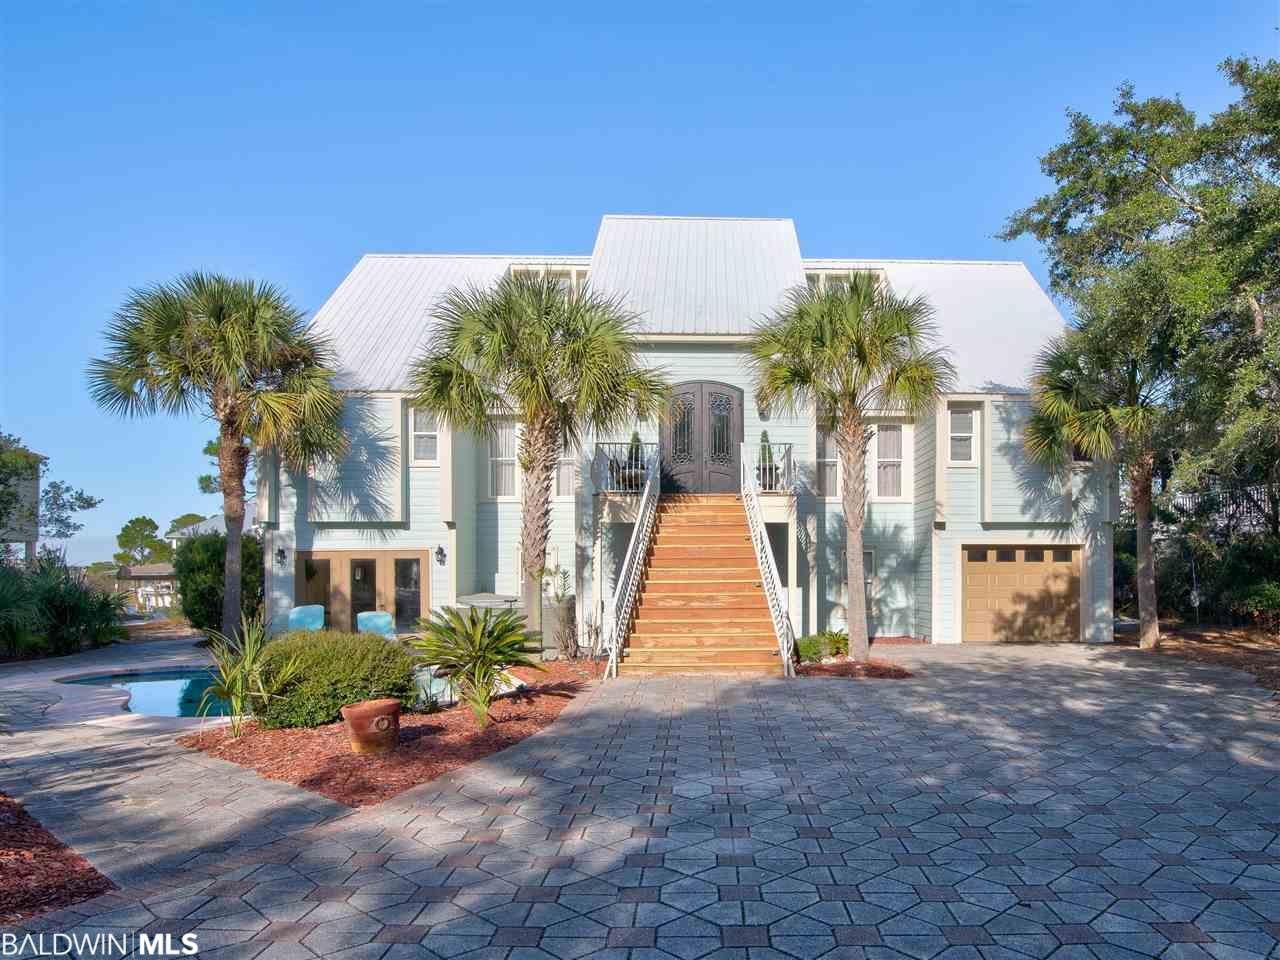 BOATERS DREAM! PROTECTED WATERFRONT, GORGEOUS BAY VIEW, POOL, ELEVATOR, Mother-In-Law Suite, 6+Bedrooms, Quiet Cul-de-sac, PROTECTED water w/Gulf access, ELEVATOR, Inground POOL, Hot Tub, 2 LIVING AREAS w/ 2 Kitchens.  PROFESSIONAL DREAM CHEF Kitchen with STAINLESS STEEL Professional Series Viking GAS Stove w/griddle, grill, 6 burners, 2 ovens, Miele coffee maker, Kitchen Maid cabinets, GRANITE,  French door refrig, Miele steamer. Thick Brazilian Cherry Flooring. 950 lb Capacity Maple Elevator, SOARING VAULTED CEILINGS, Beautifully Redecorated & approx $40k in upgrades. Upscale neutral decor offer elegance & tranquility. Main floor Master Suite, Living Rm, DECK overlook Canal & Bay. Formal Dining Rm, Sitting Rm. 1,000sf ground-floor bonus a